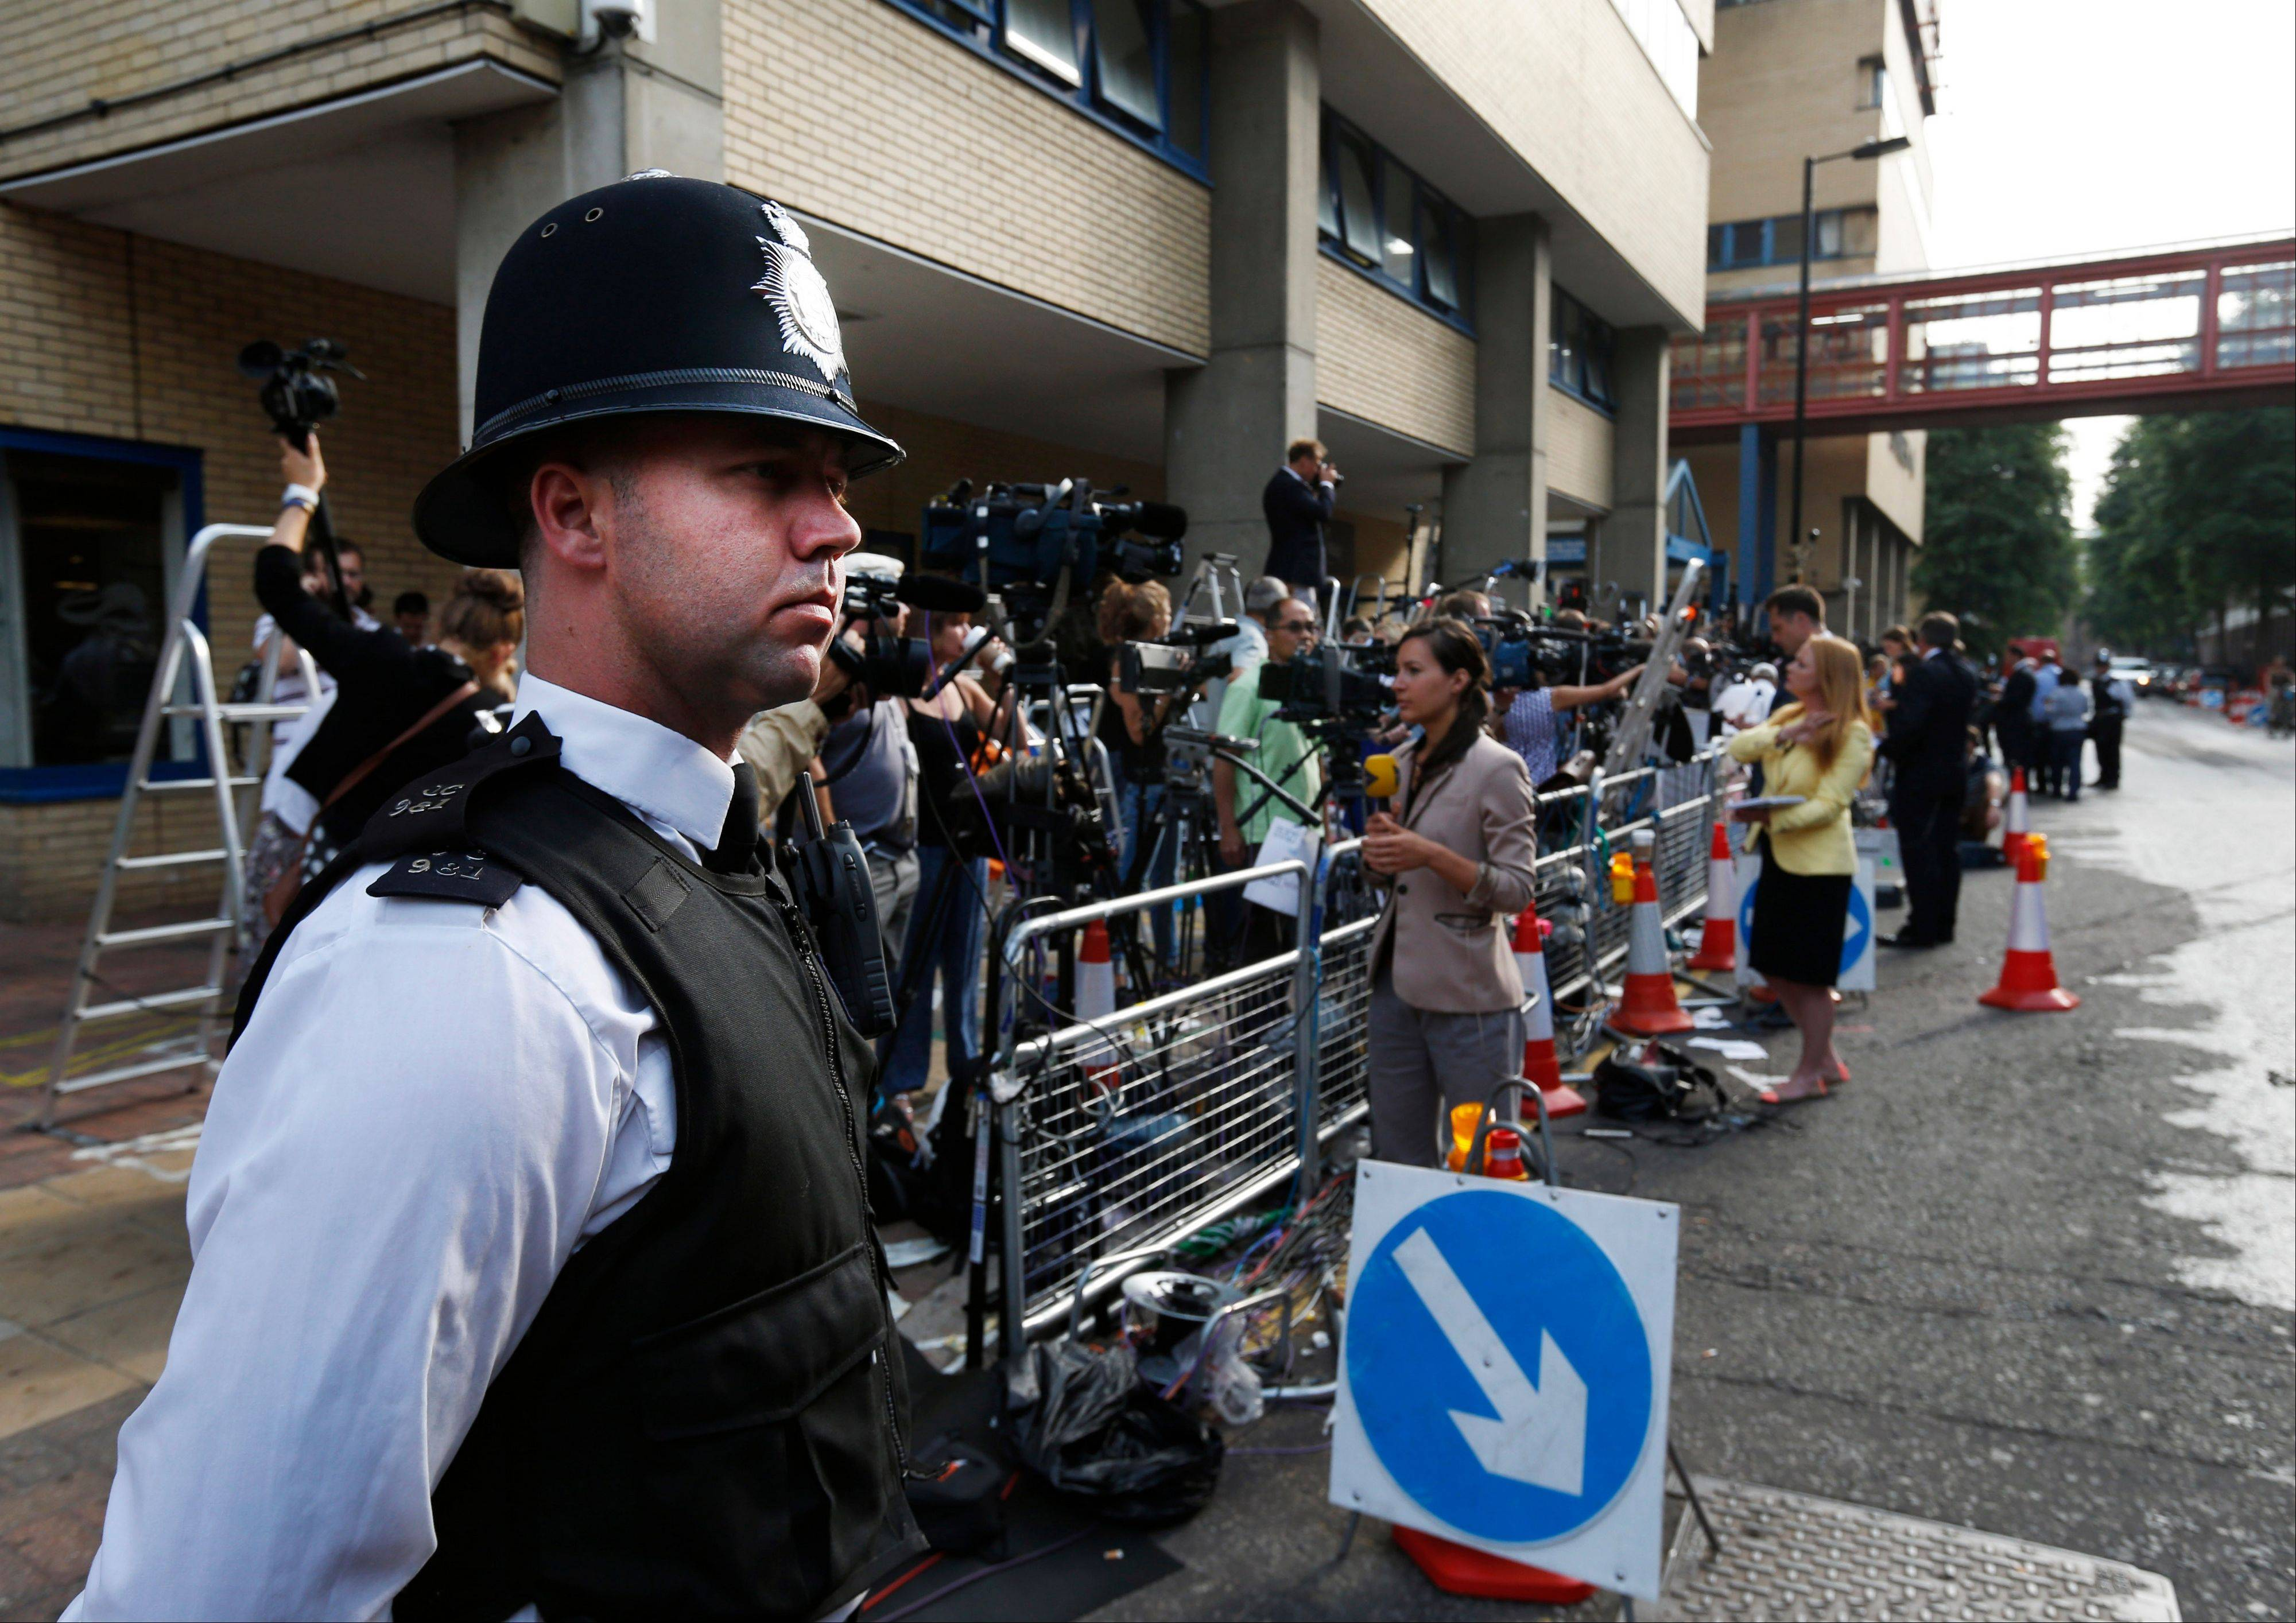 Backdropped by members of the media, a British police officer stands across the entrance of St. Mary's Hospital exclusive Lindo Wing in London, Monday.